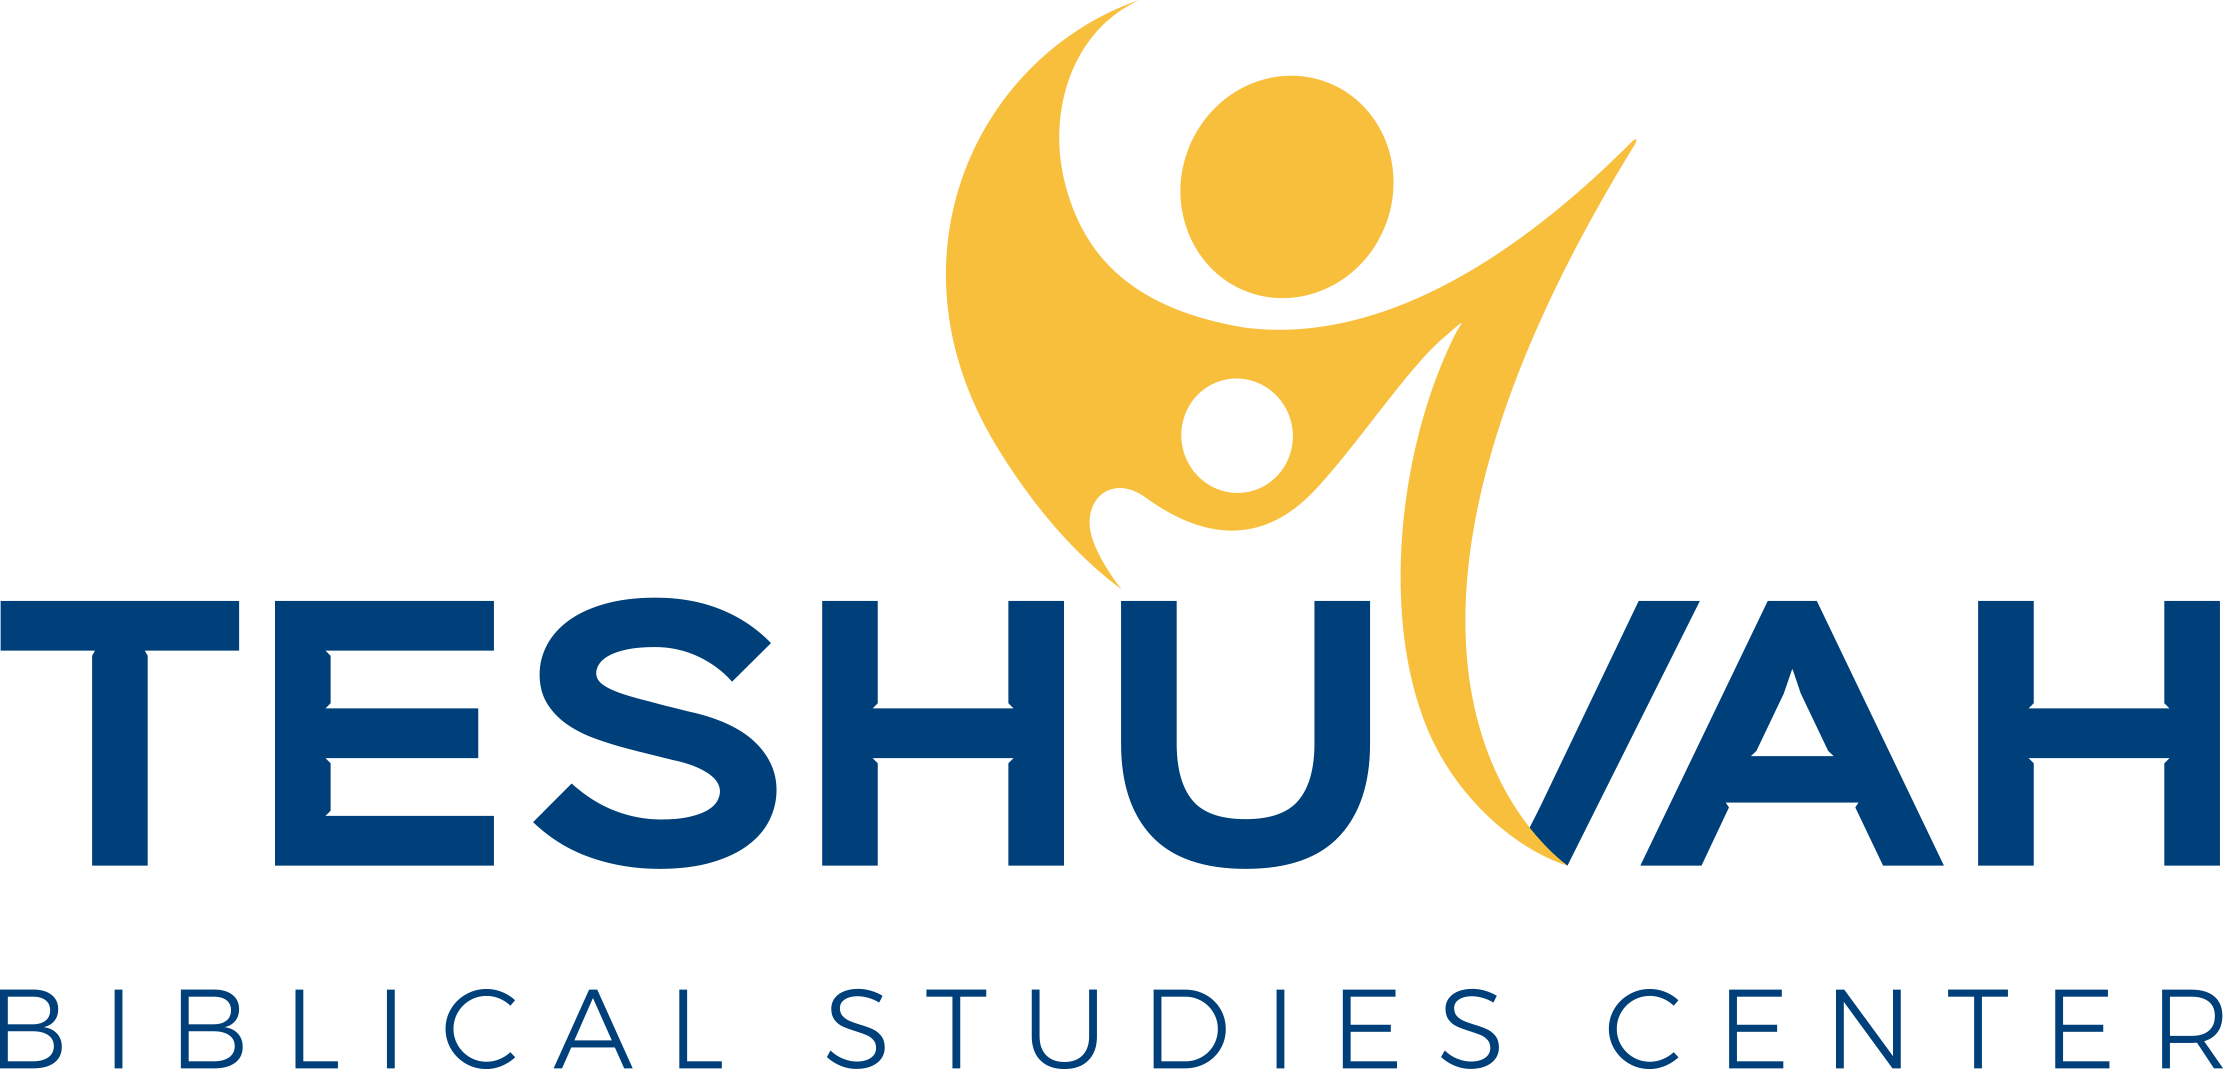 Ya te puedes matricular en Teshuvah Biblical Studies Center